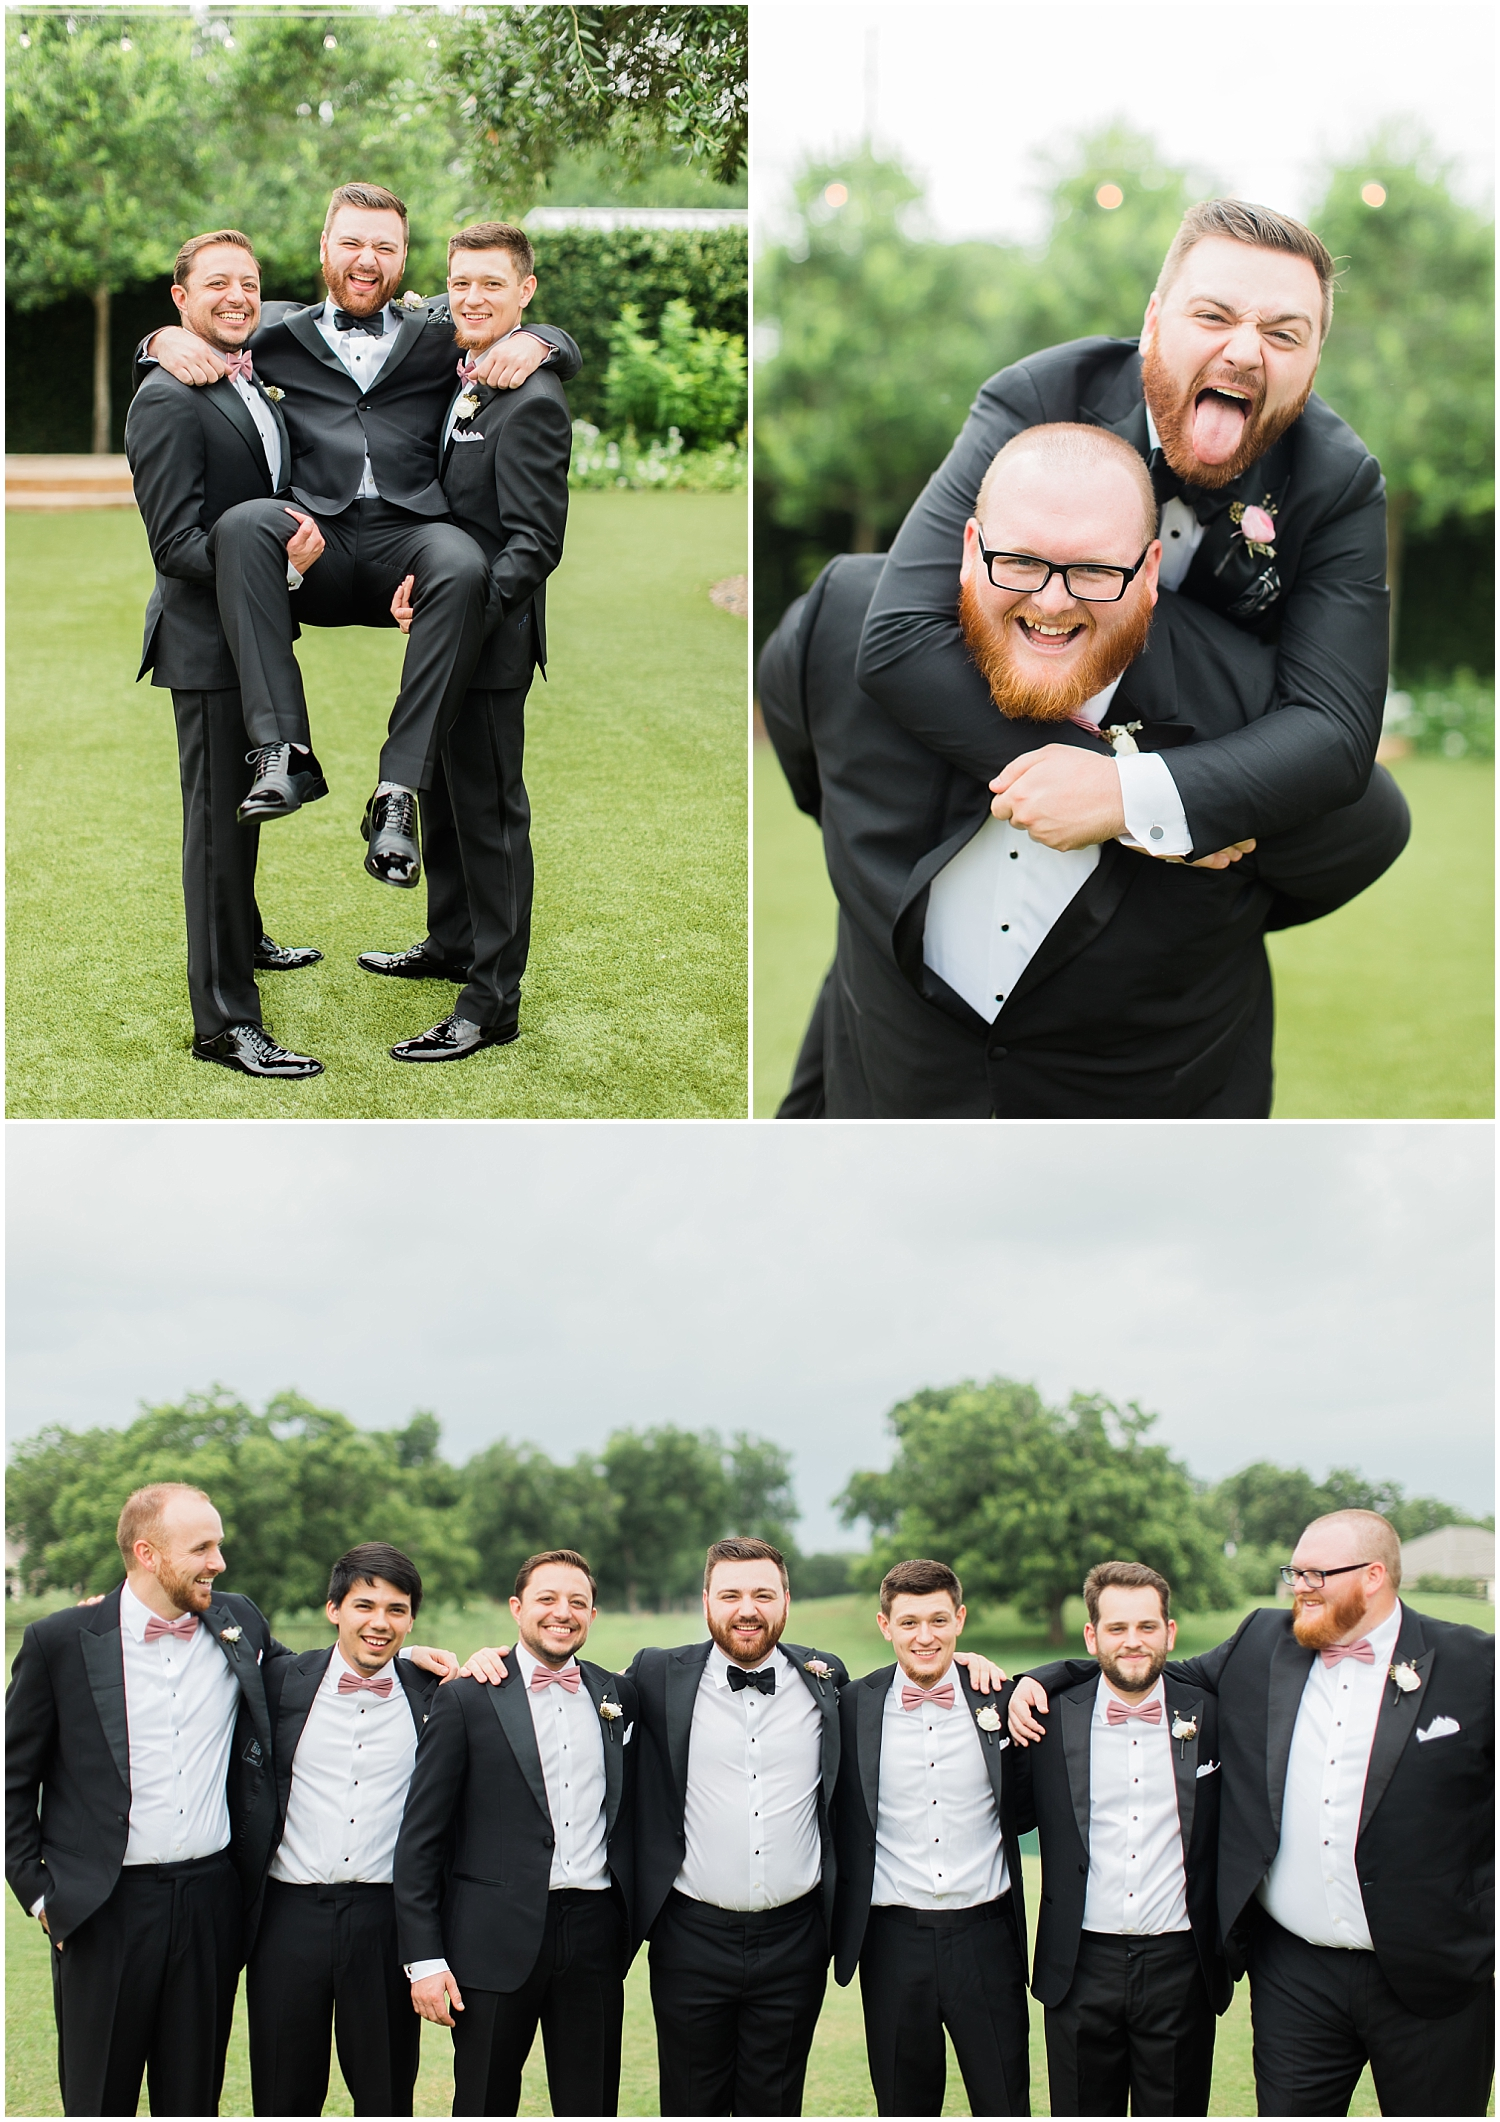 Groom and groomsmen being silly before the wedding